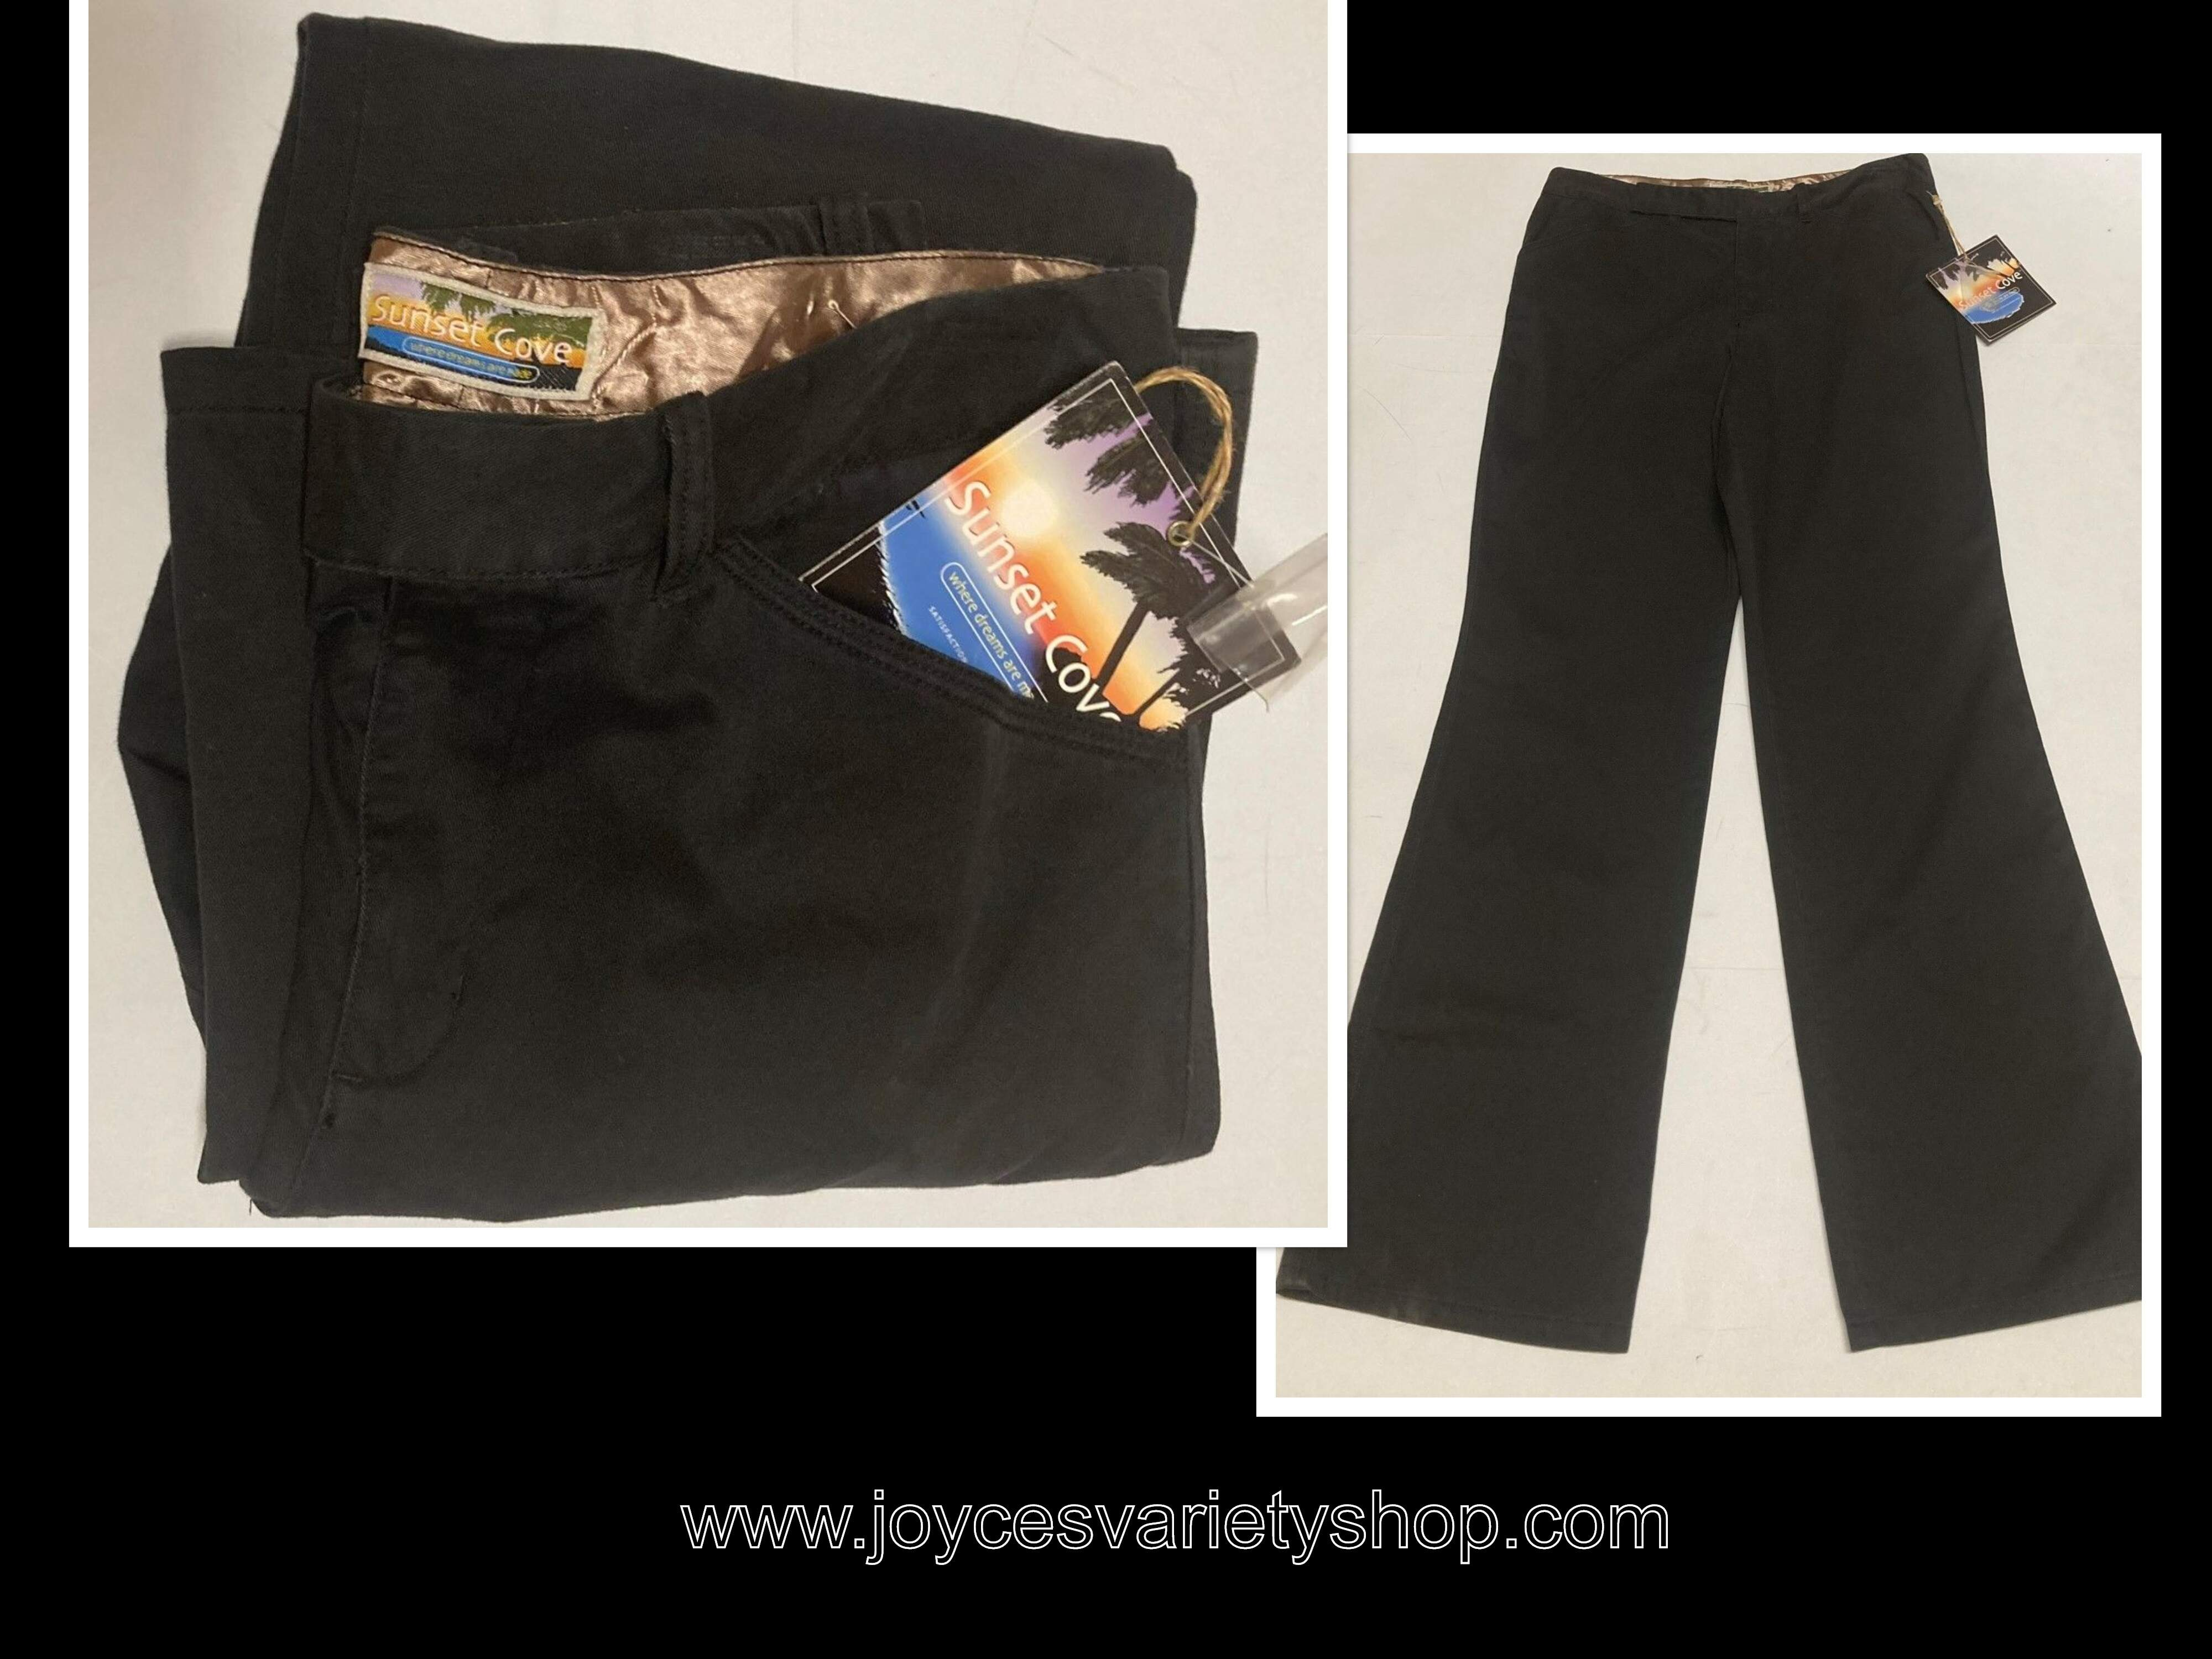 "Women's Low Rise Hipster Jeans Pants SZ 10 Waist 32"" Sunset Cove Black"